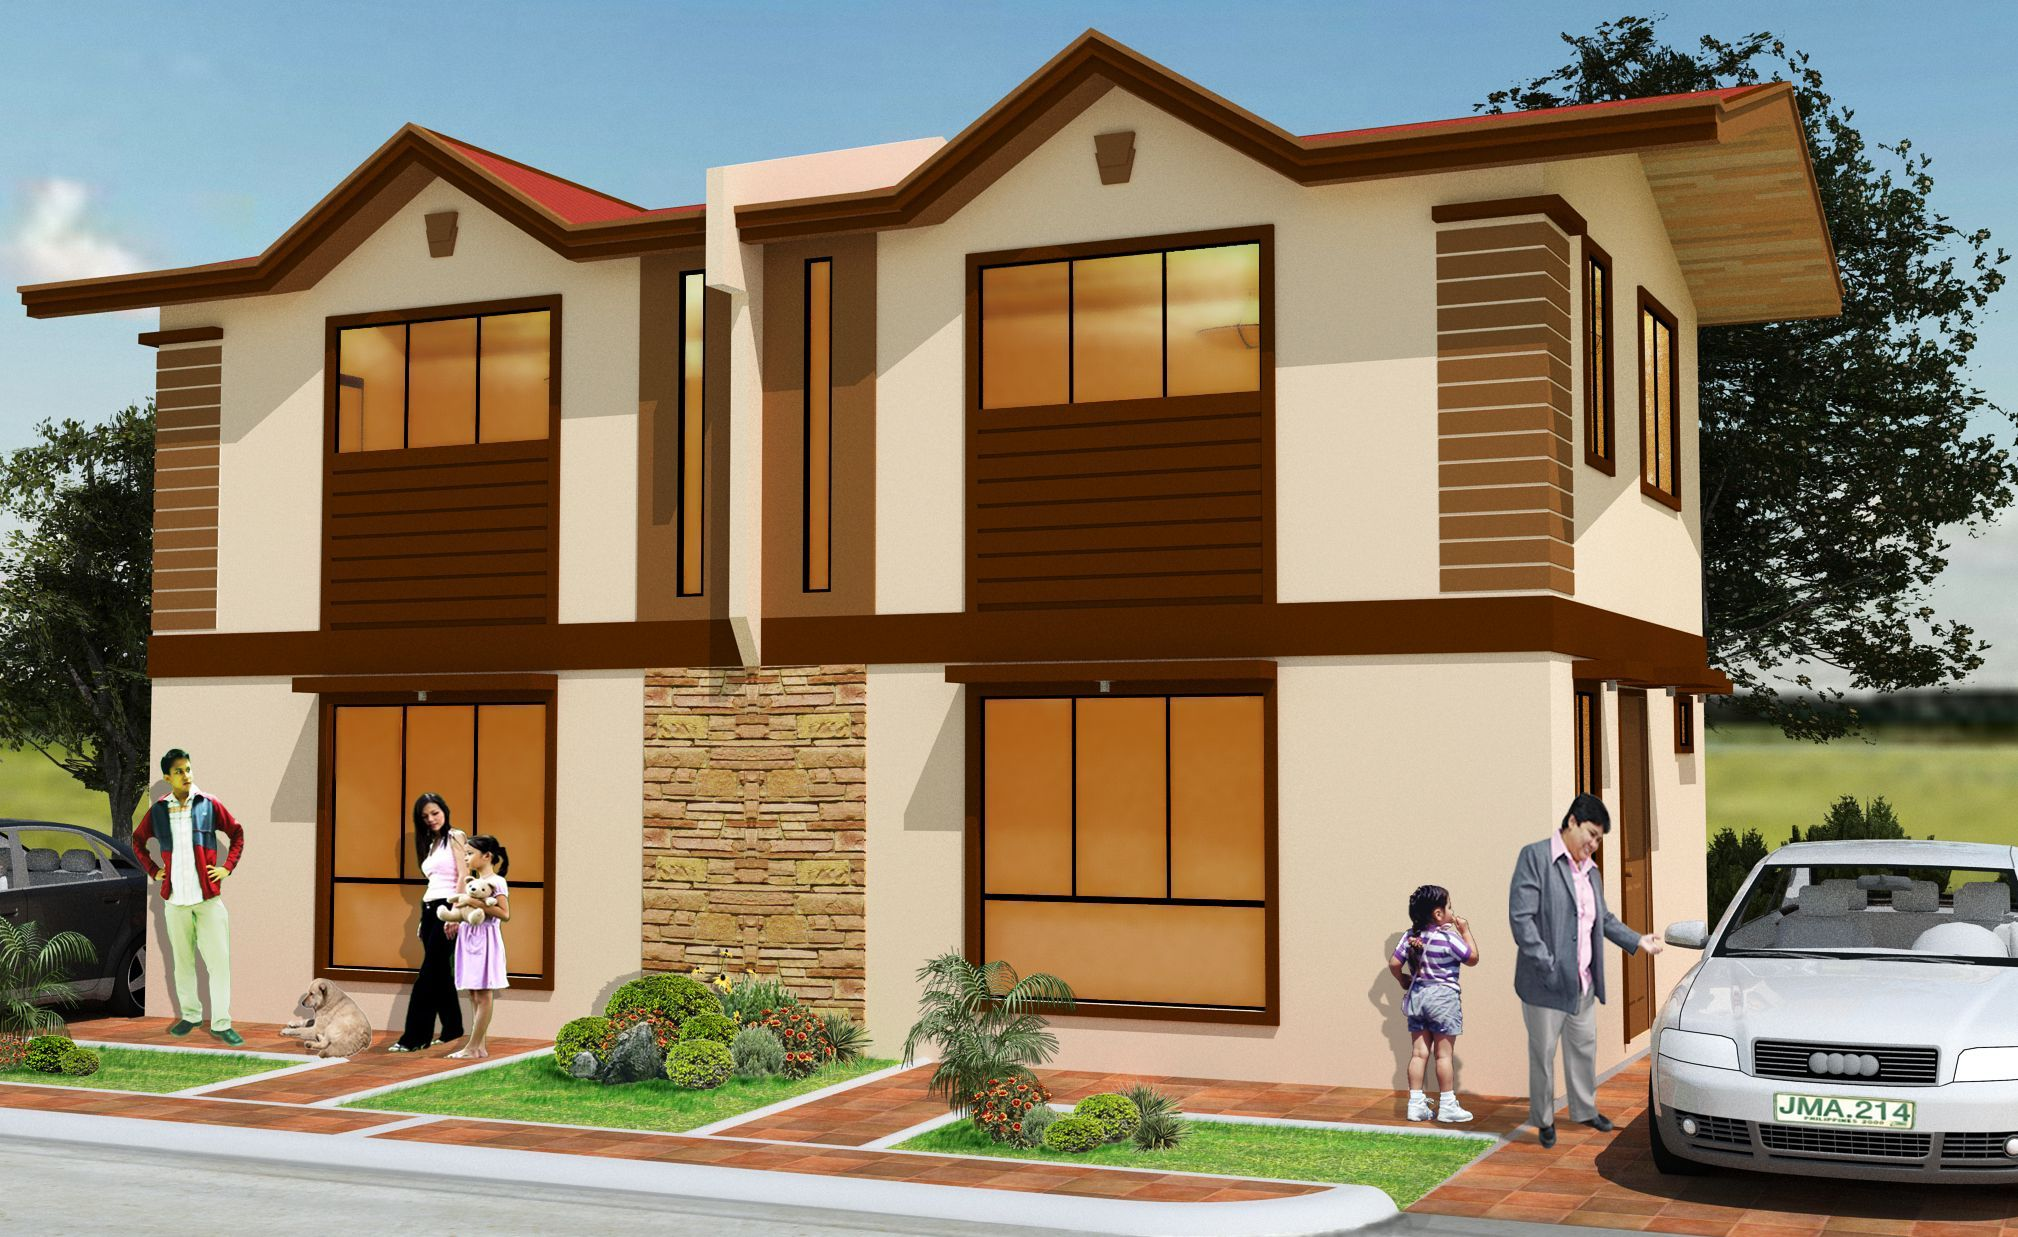 Chandra Duplex Minimum Lot Area 80sqm Floor Area 50-60sqm including carport and veranda